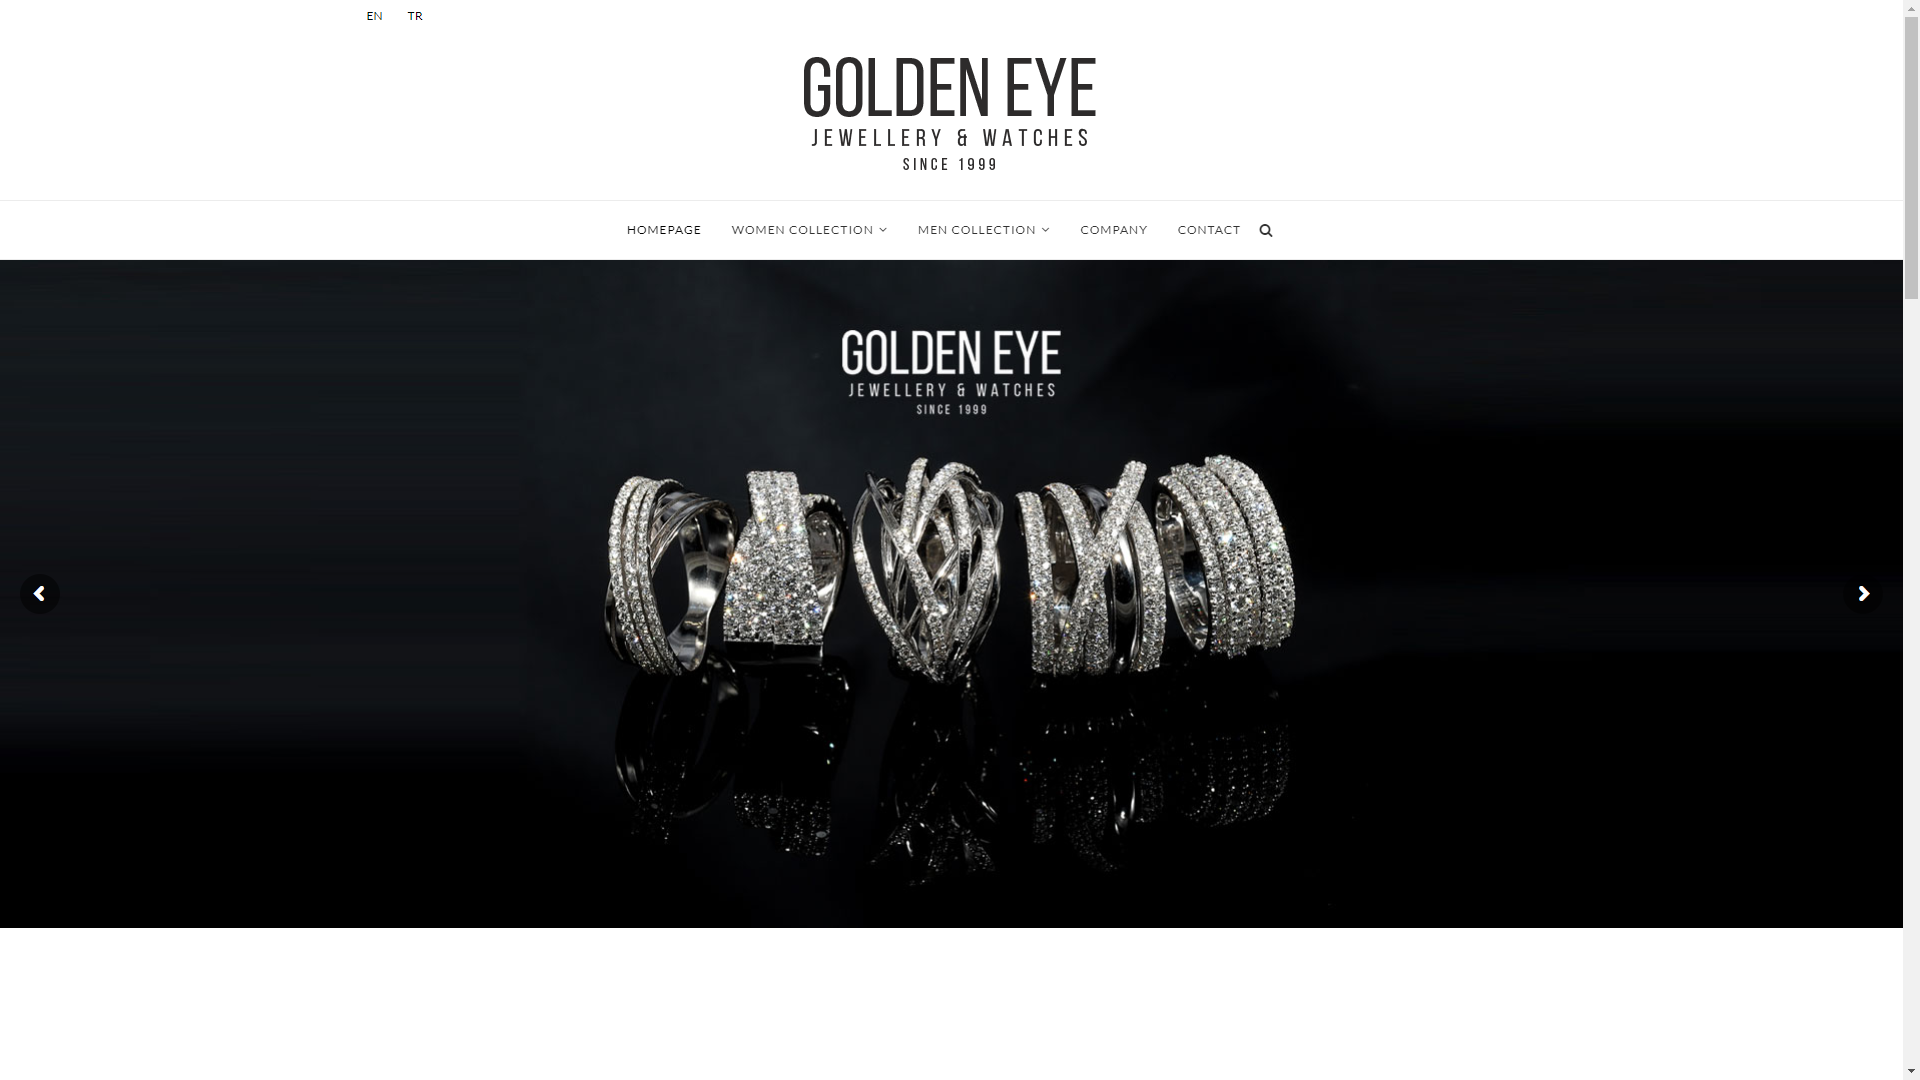 webfili-Alanya-Jewelry-Shop-Golden-Eye-Renewed-01. png